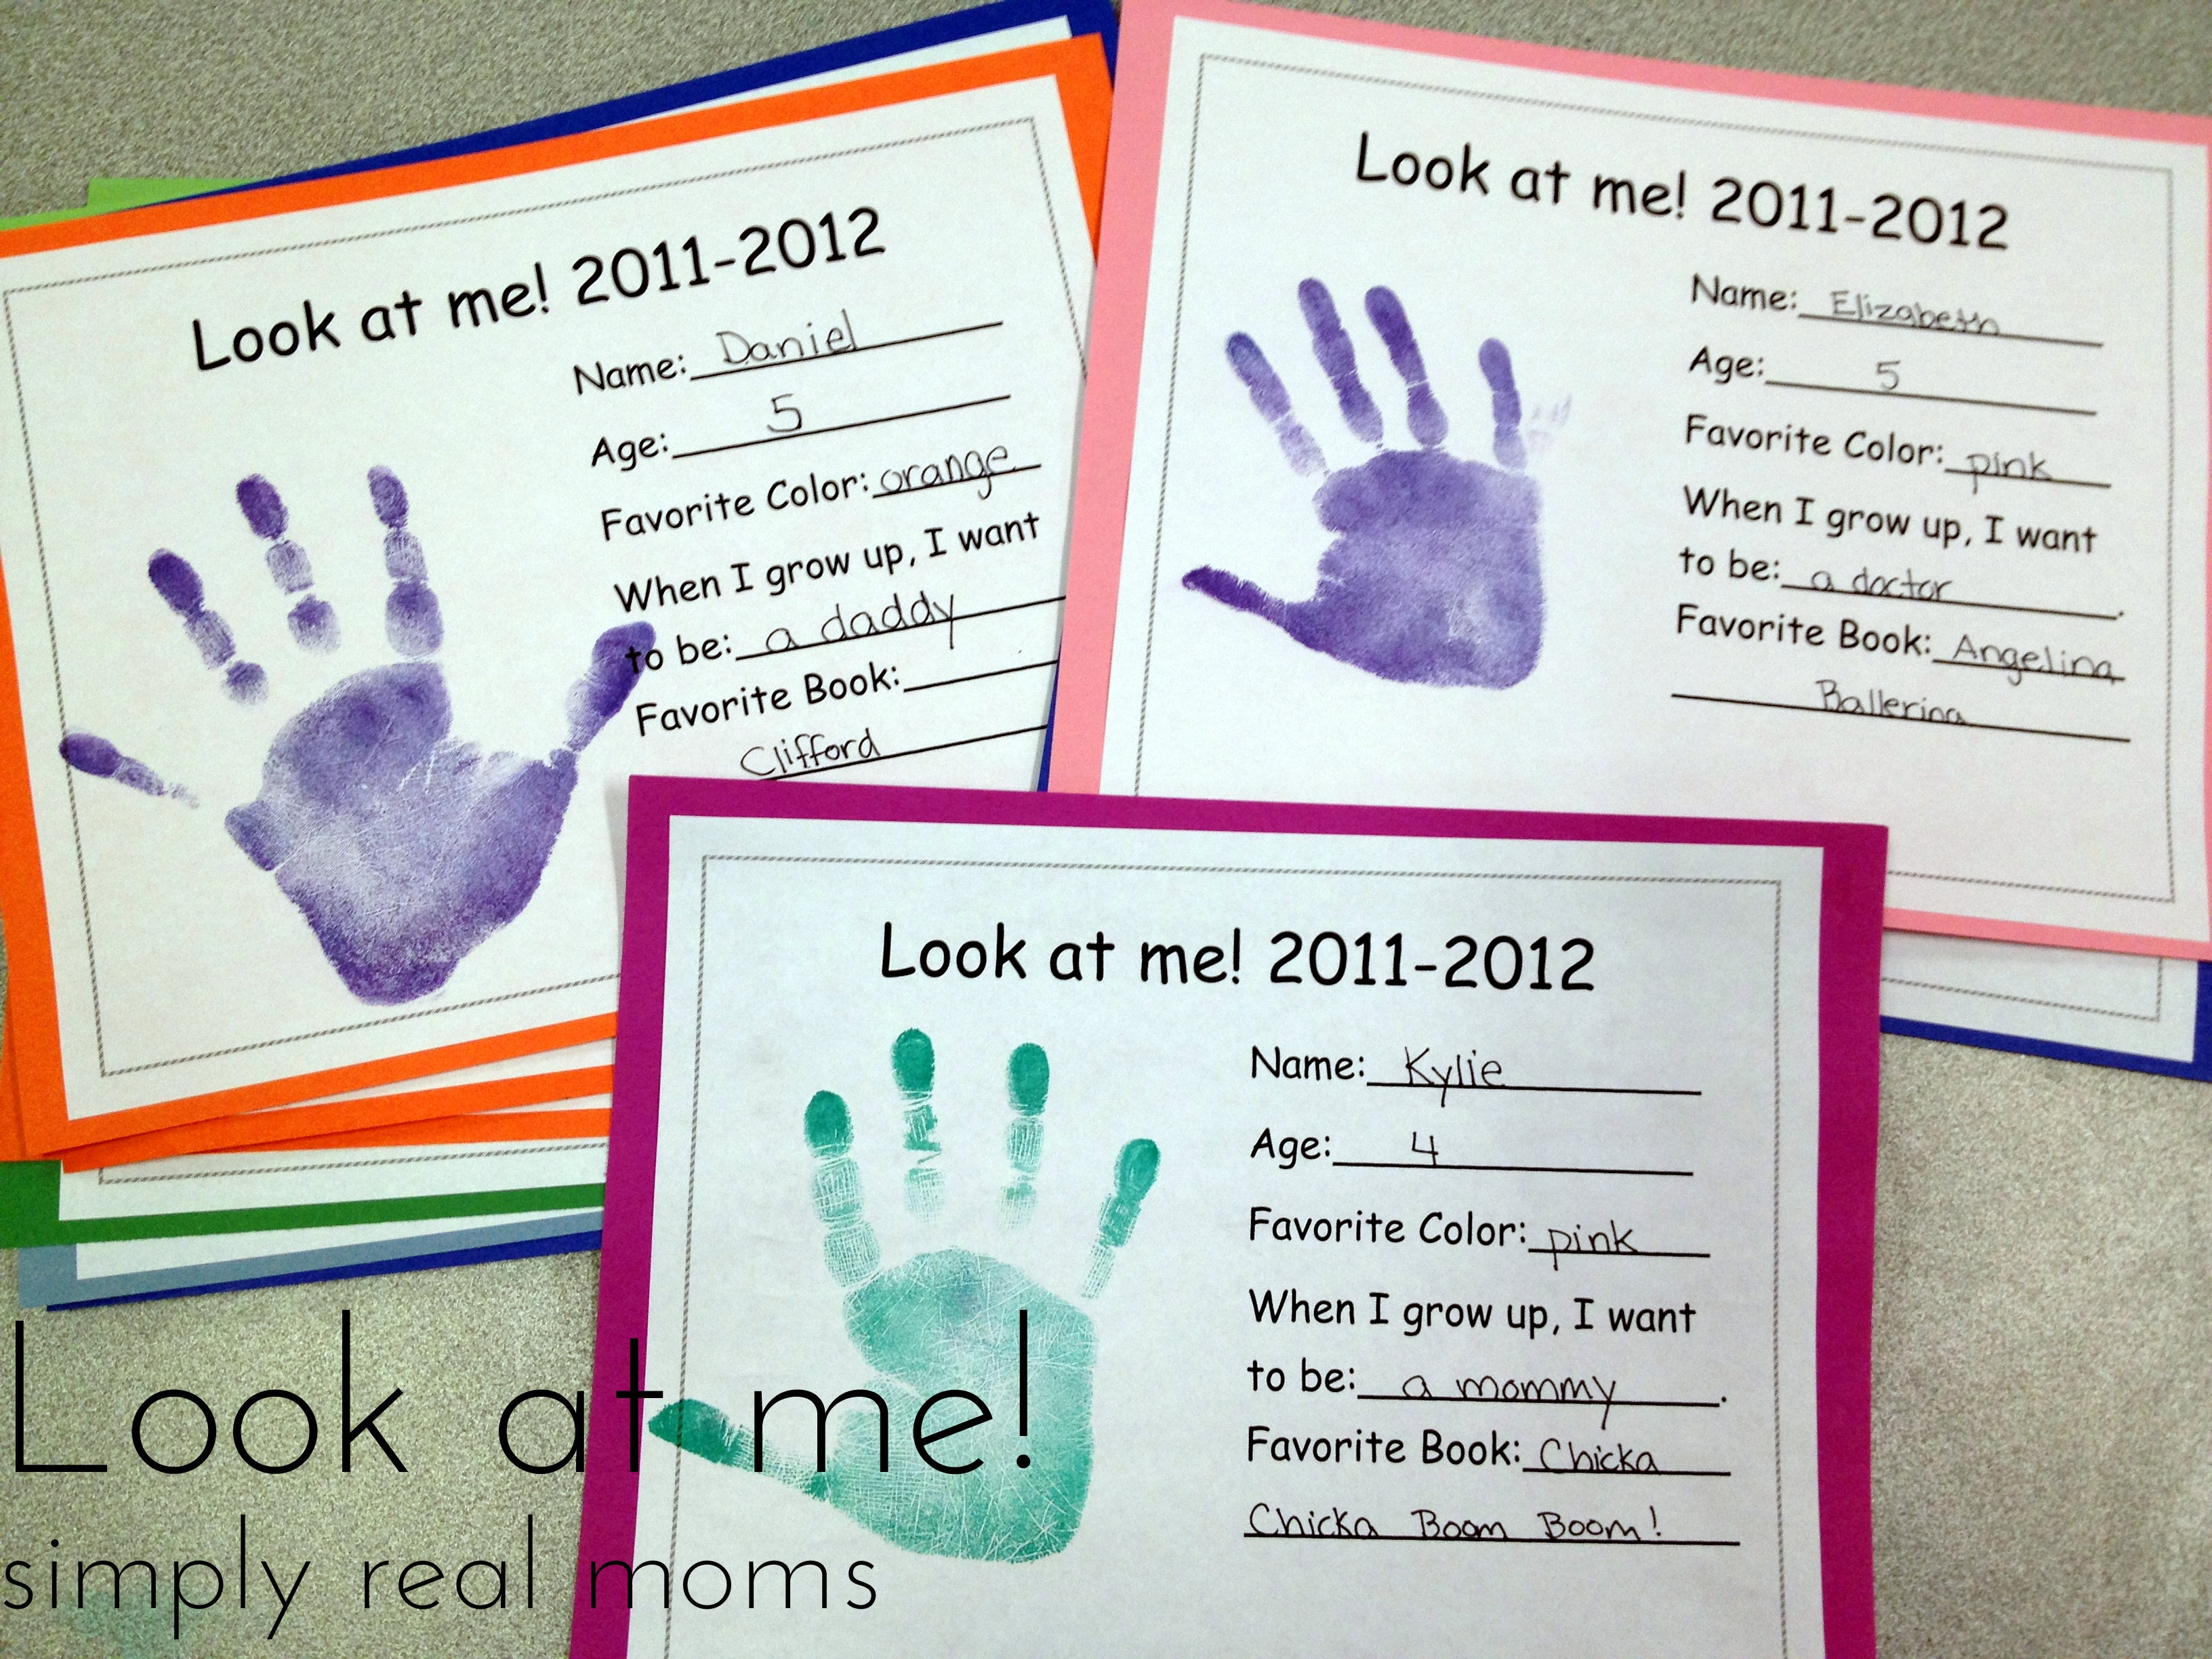 Look At Me With Free Printable - Simply Real Moms - Free Printable Preschool Memory Book